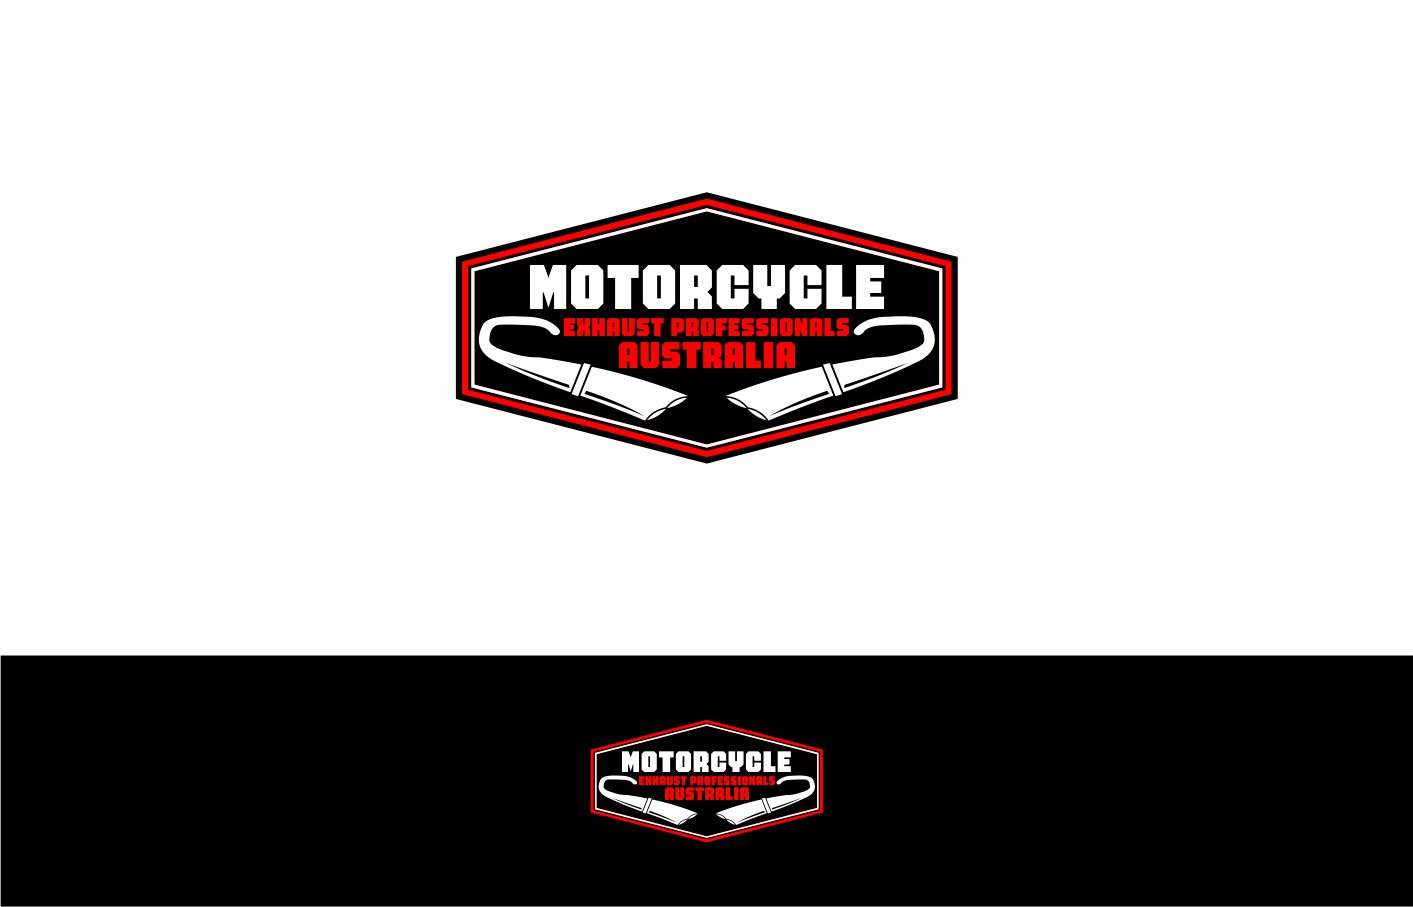 Logo Design For Motorcycle Exhaust Professionals Australia By Kkopi Design 19954713